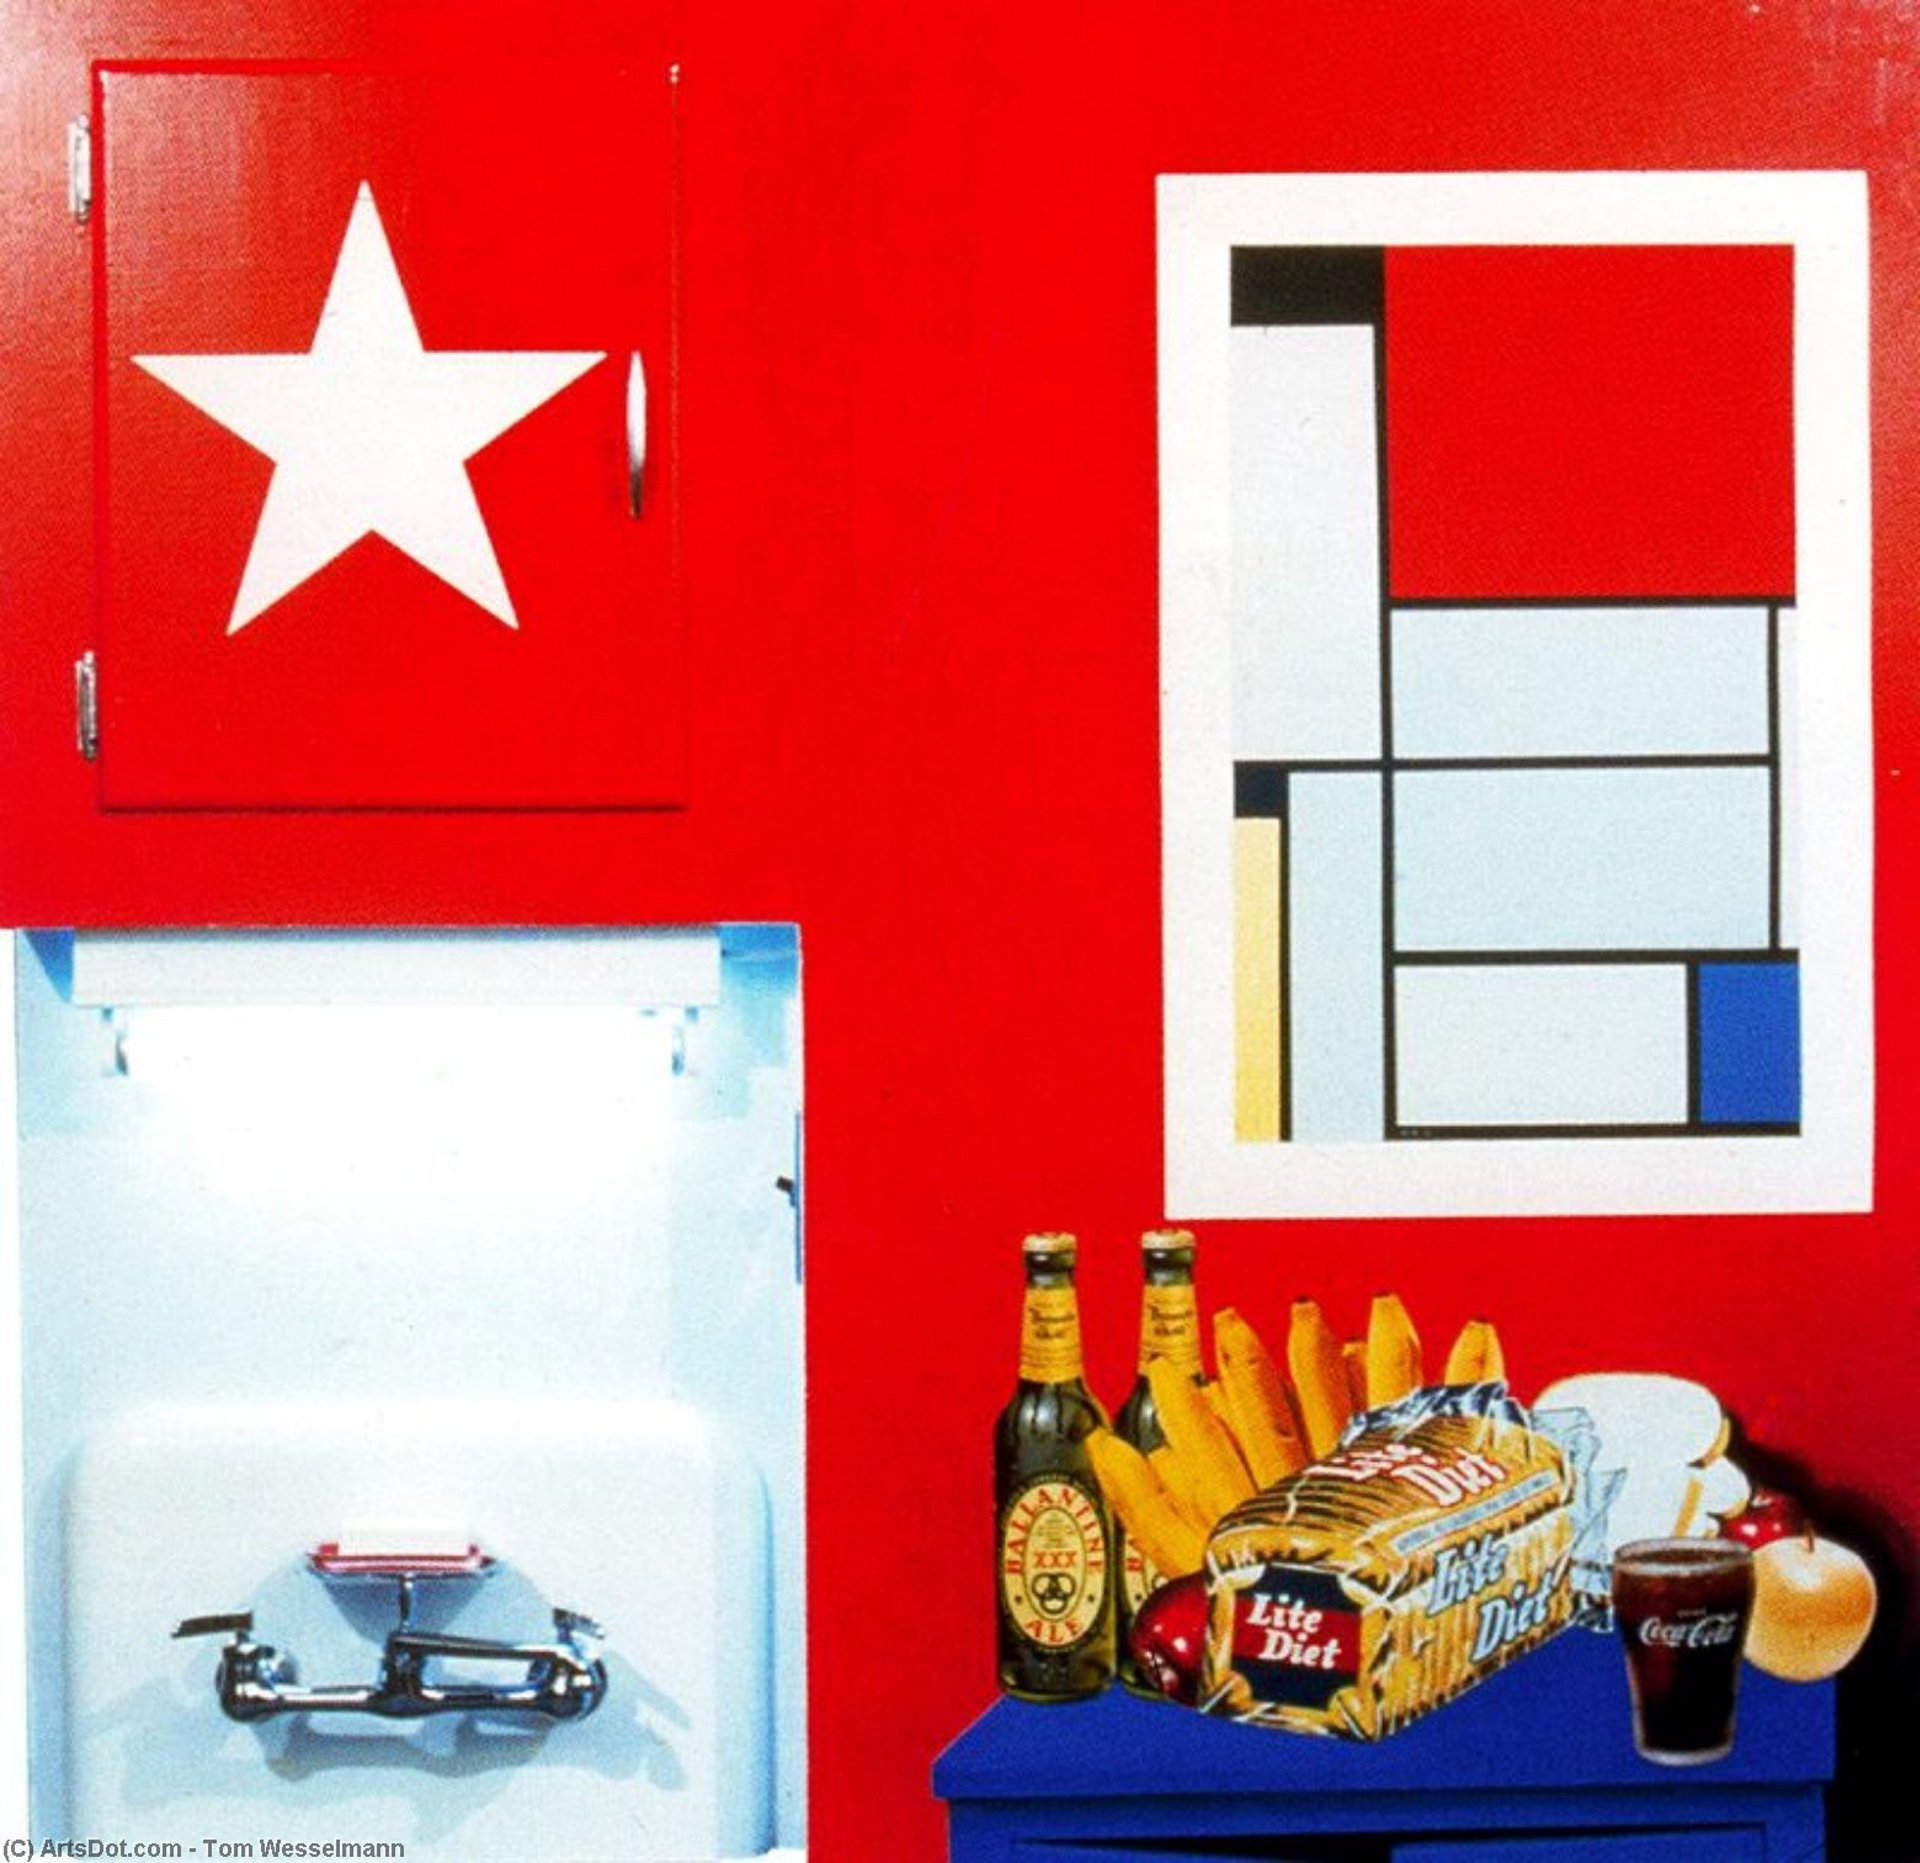 Still Life #20 (1962) by Tom Wesselmann - Pako Campo